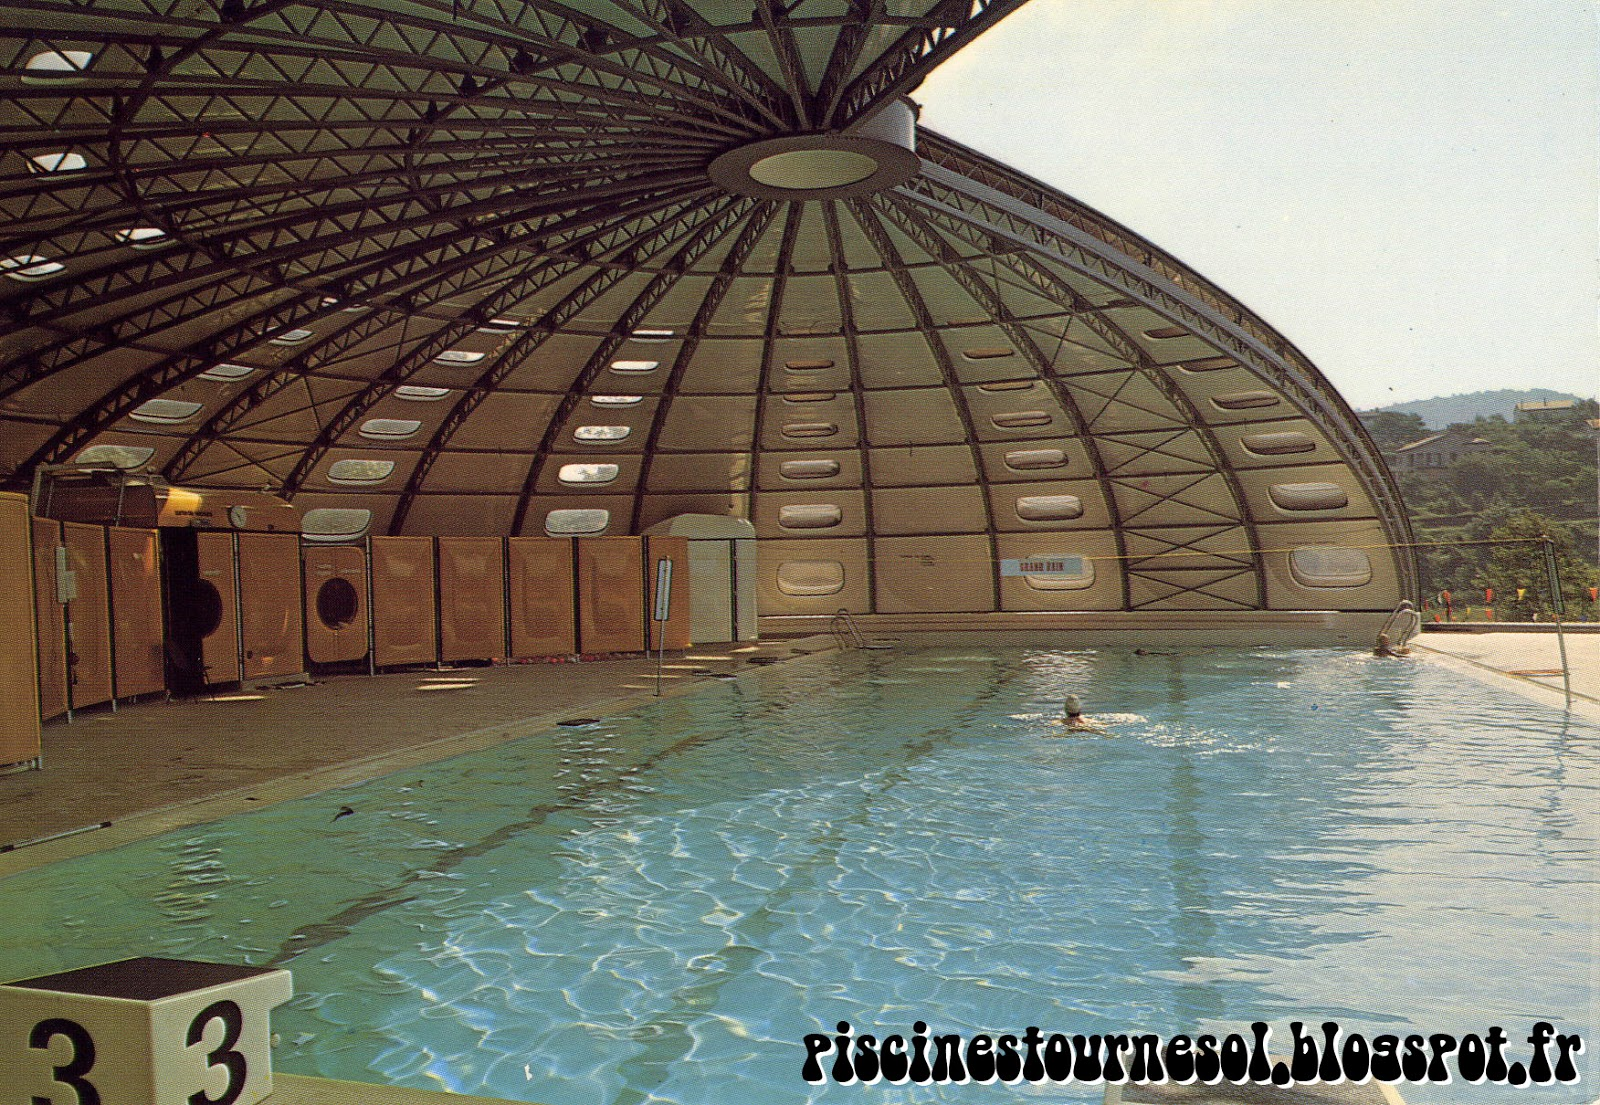 Piscines tournesol piscine tournesol privas en vivarais for Piscine tournesol